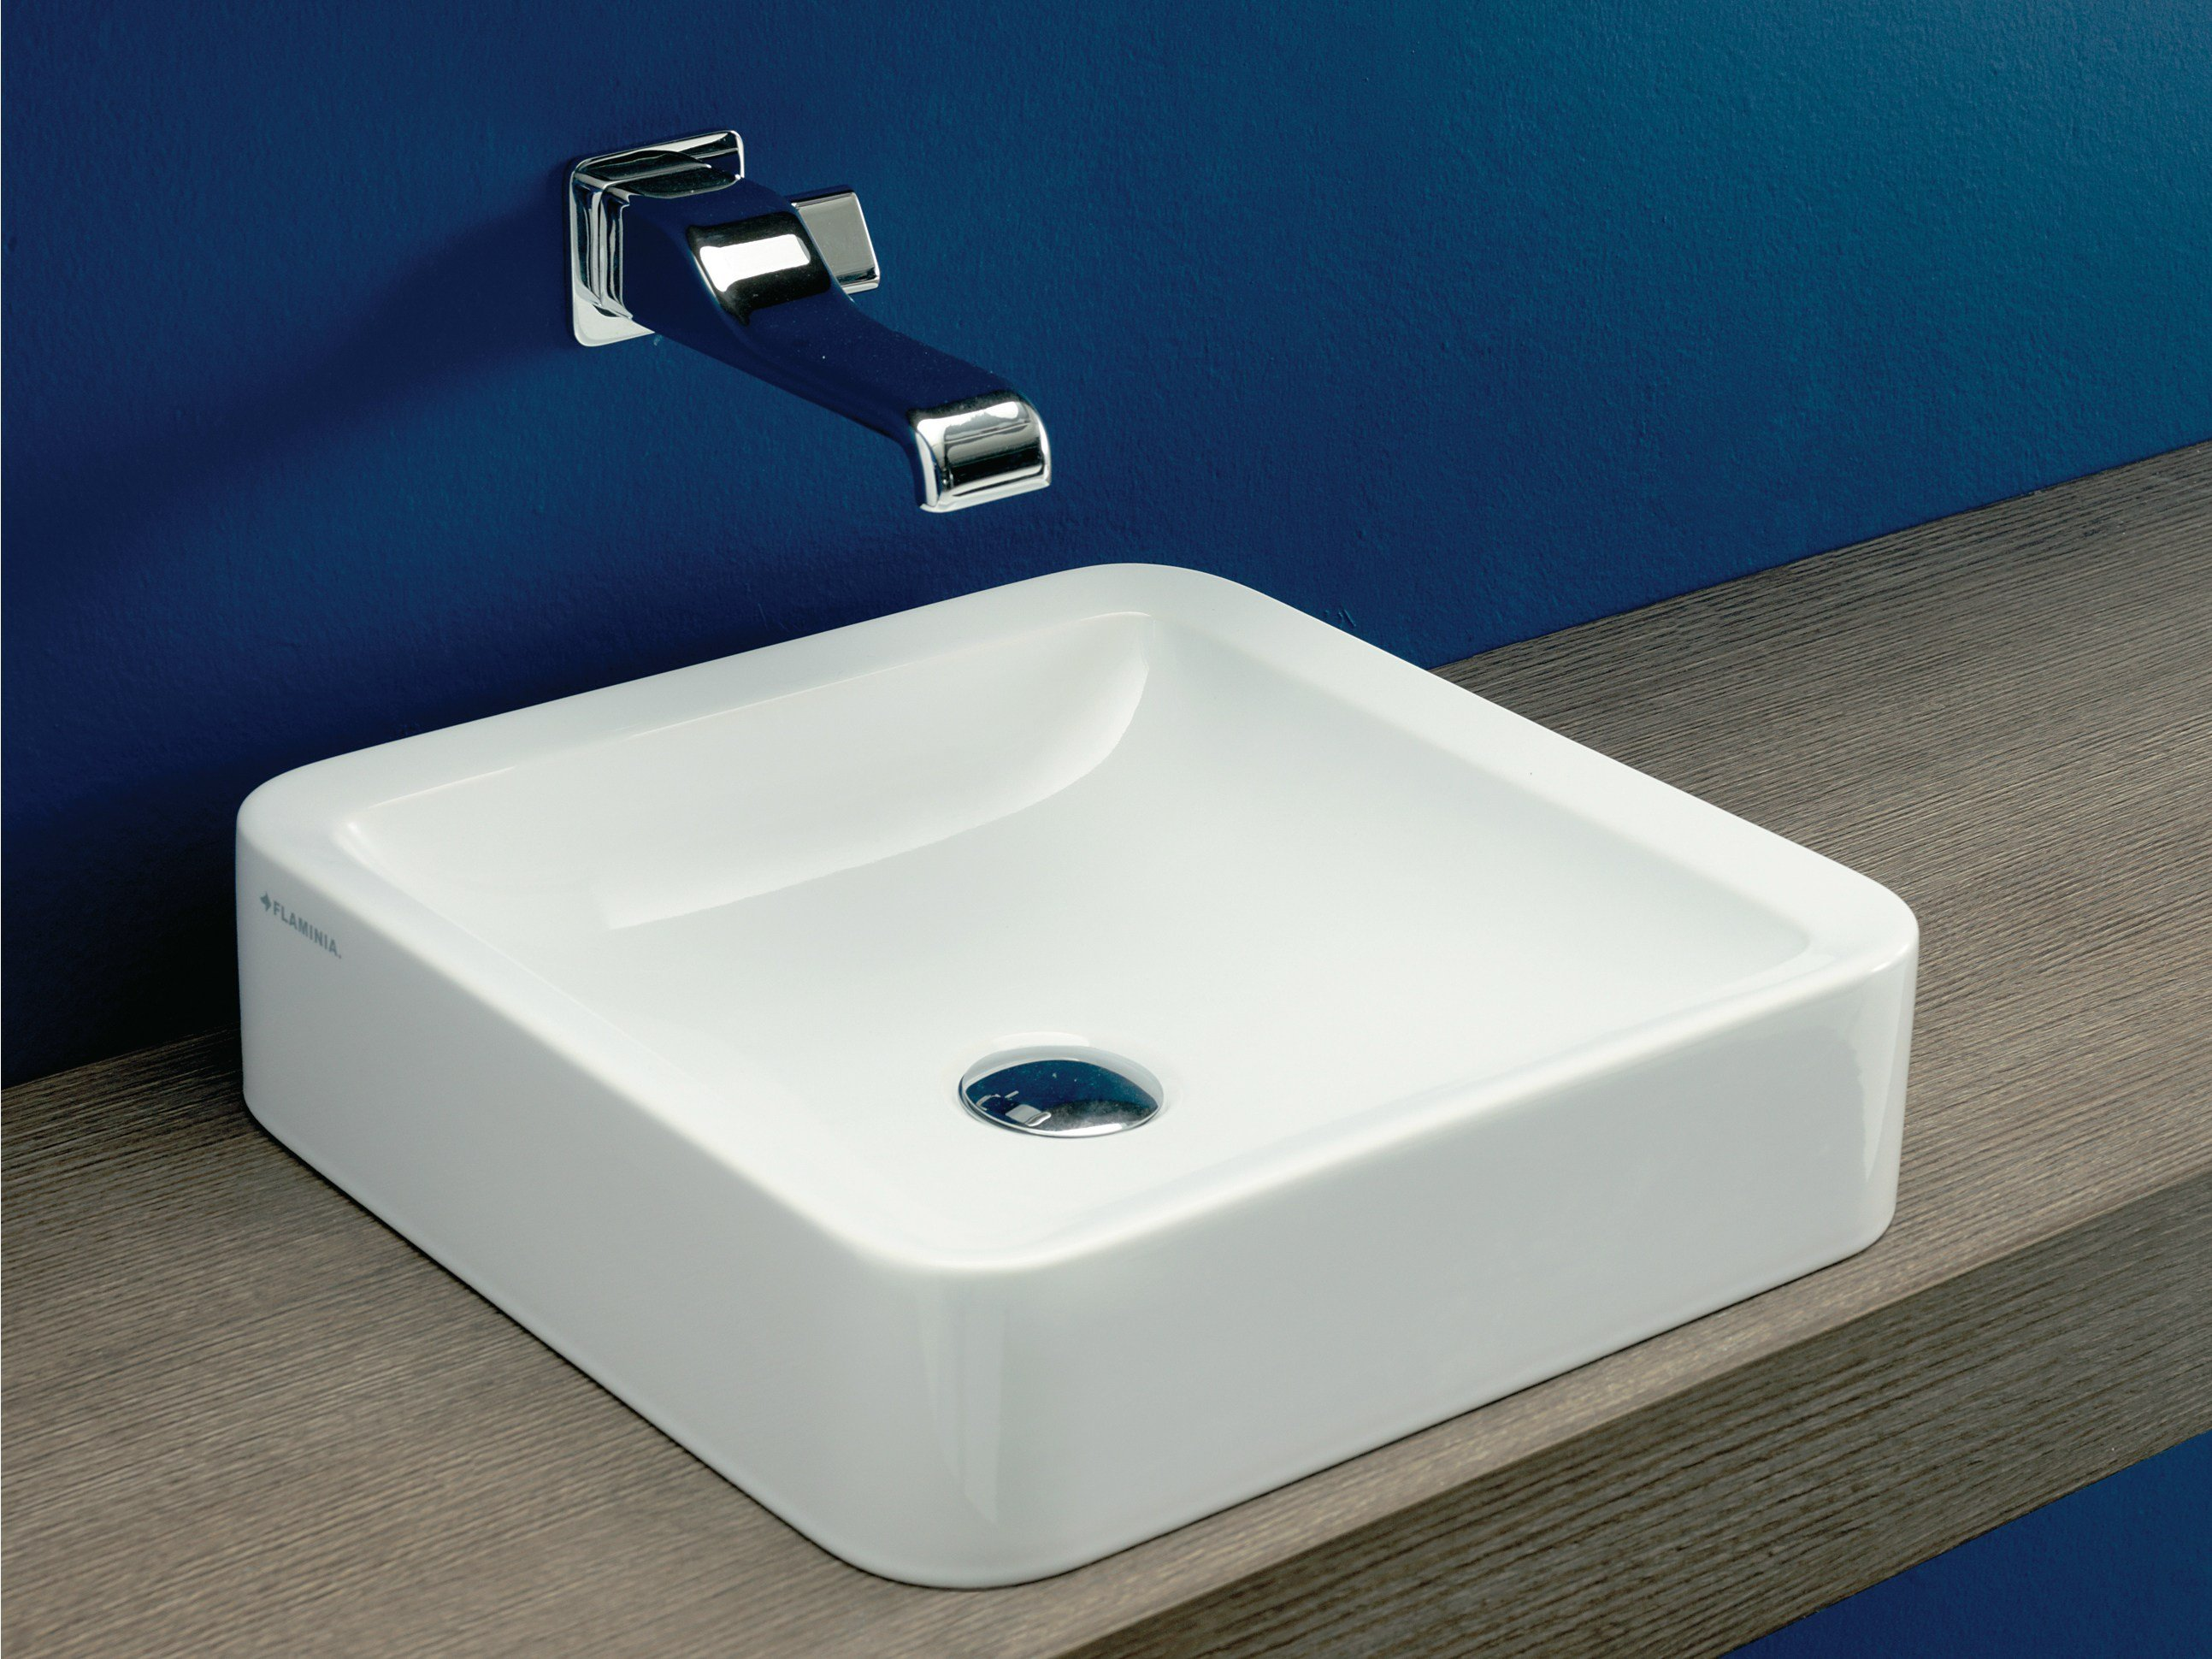 Nile 40 lavabo da appoggio by ceramica flaminia design patrick norguet for Lavabo design